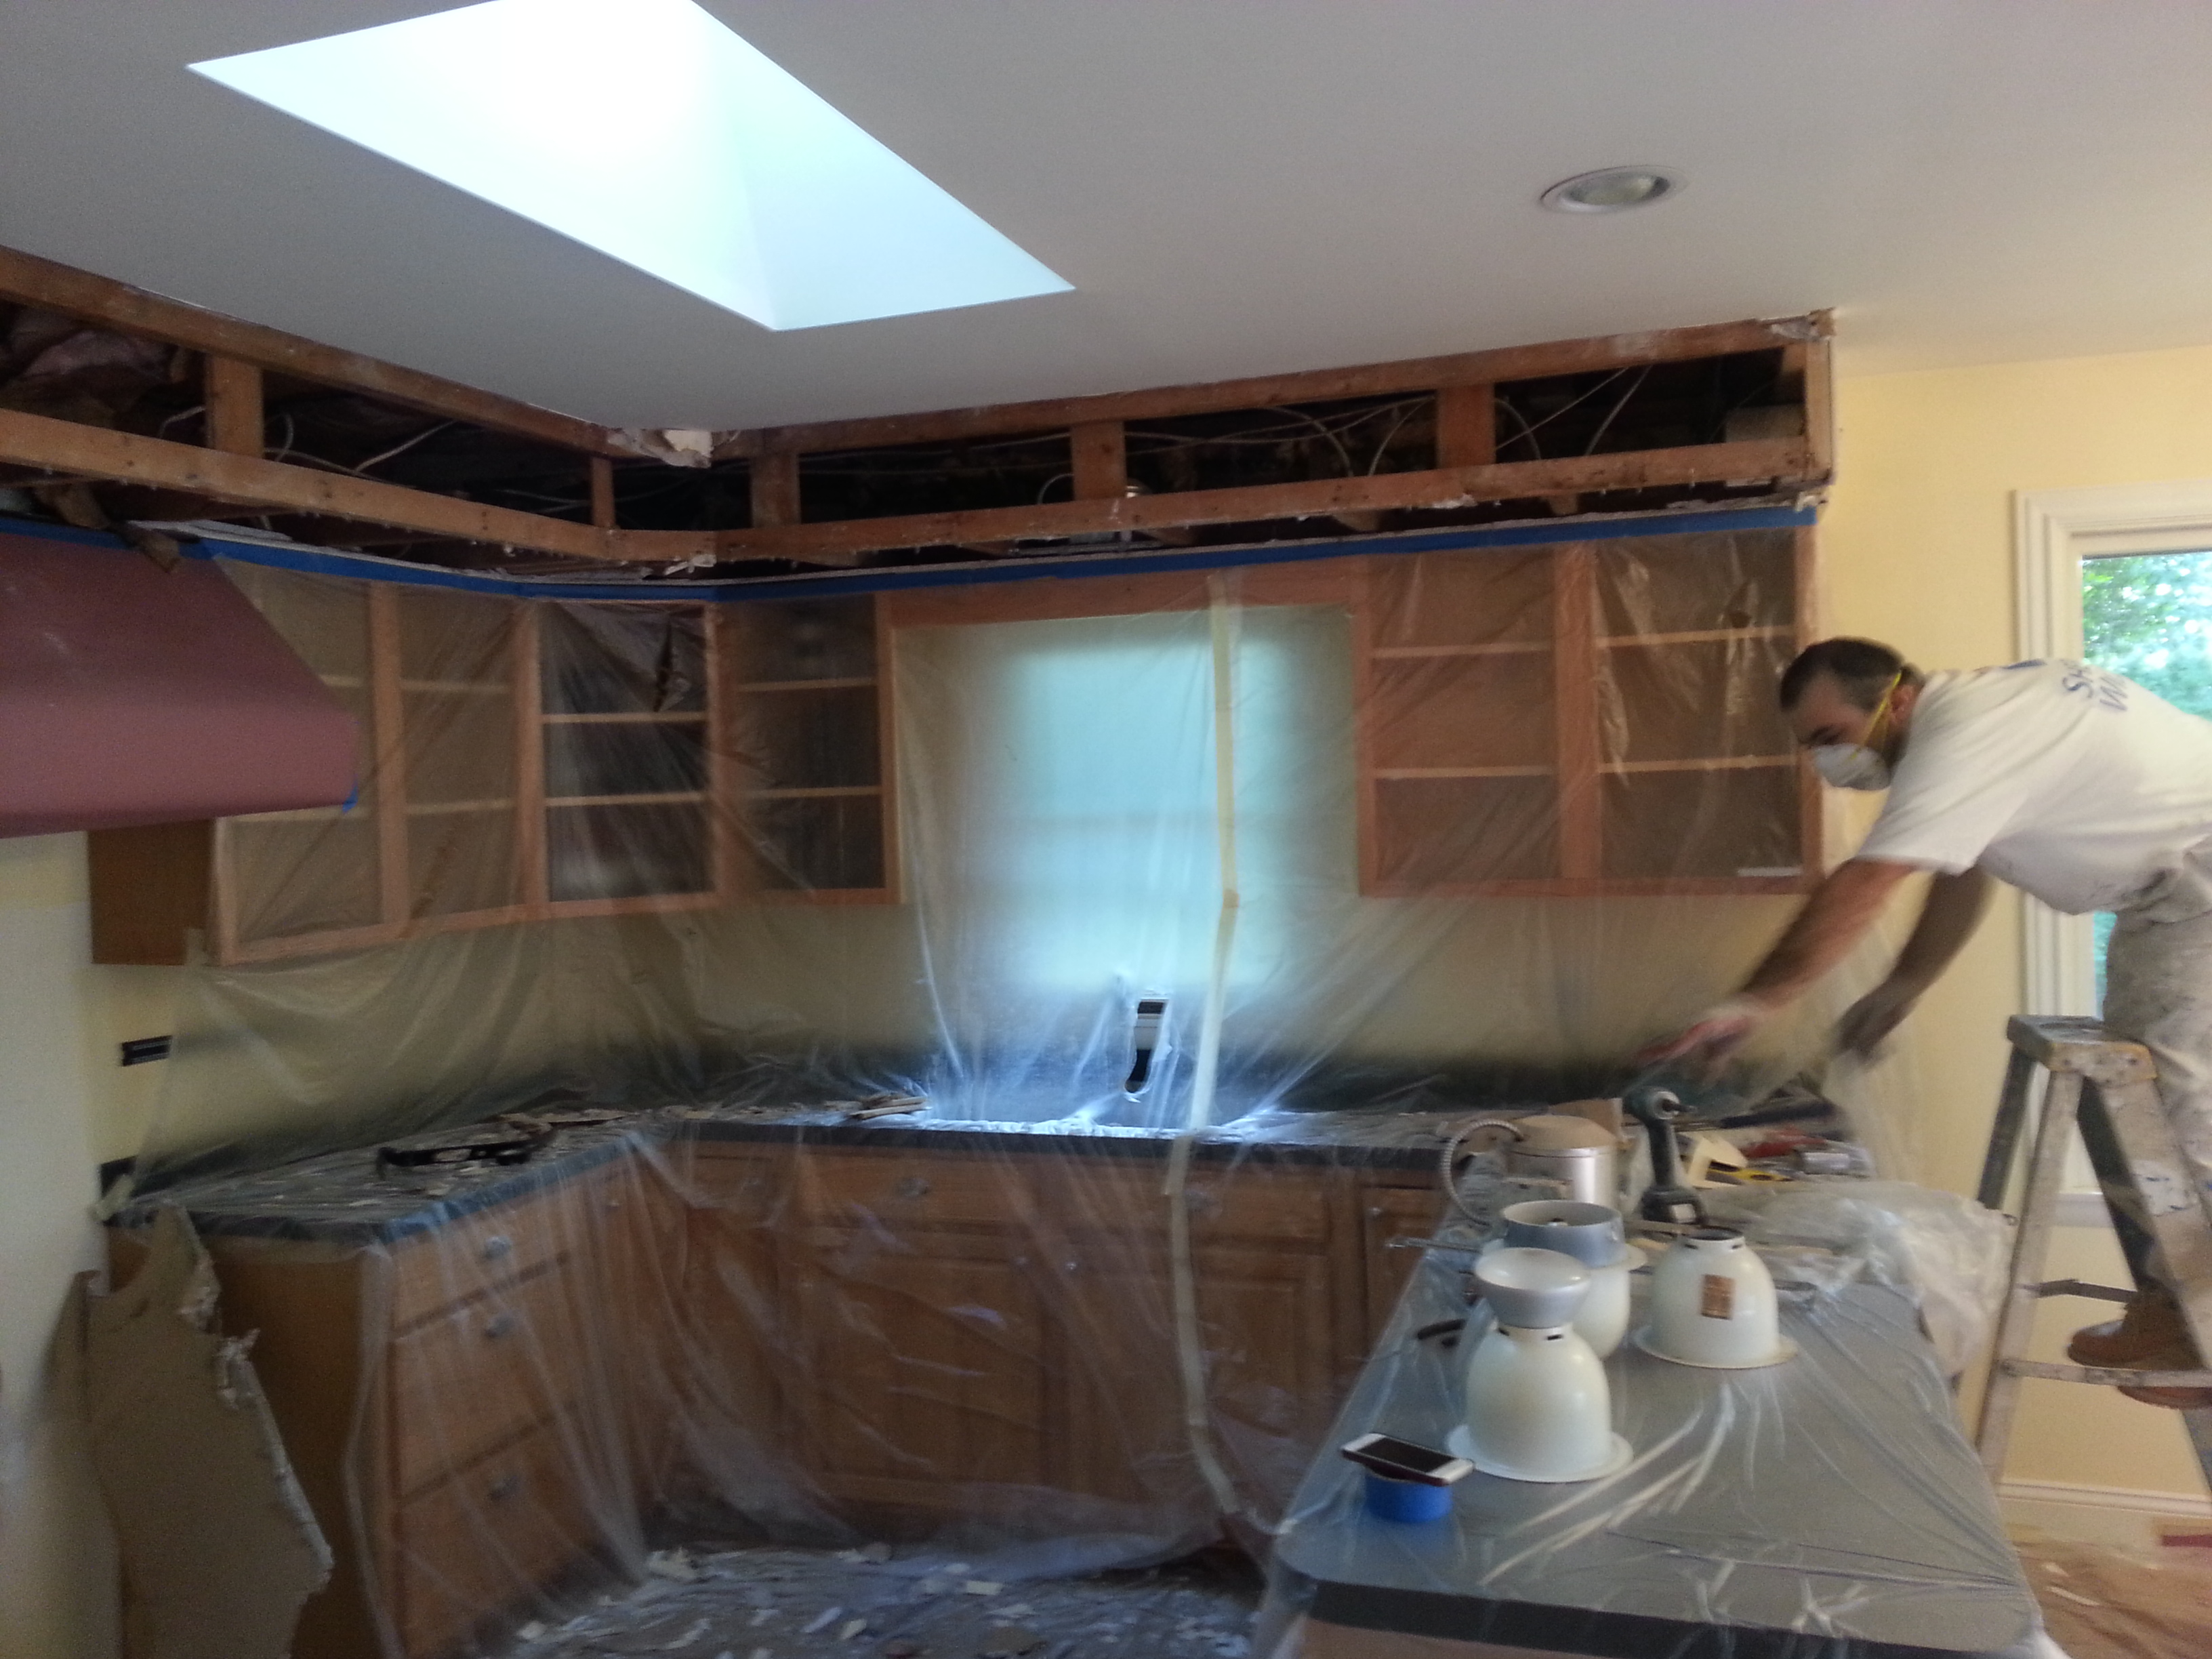 Kitchen Cabinet Painting and Remodeling in Moorestown, NJ - Cherry ...